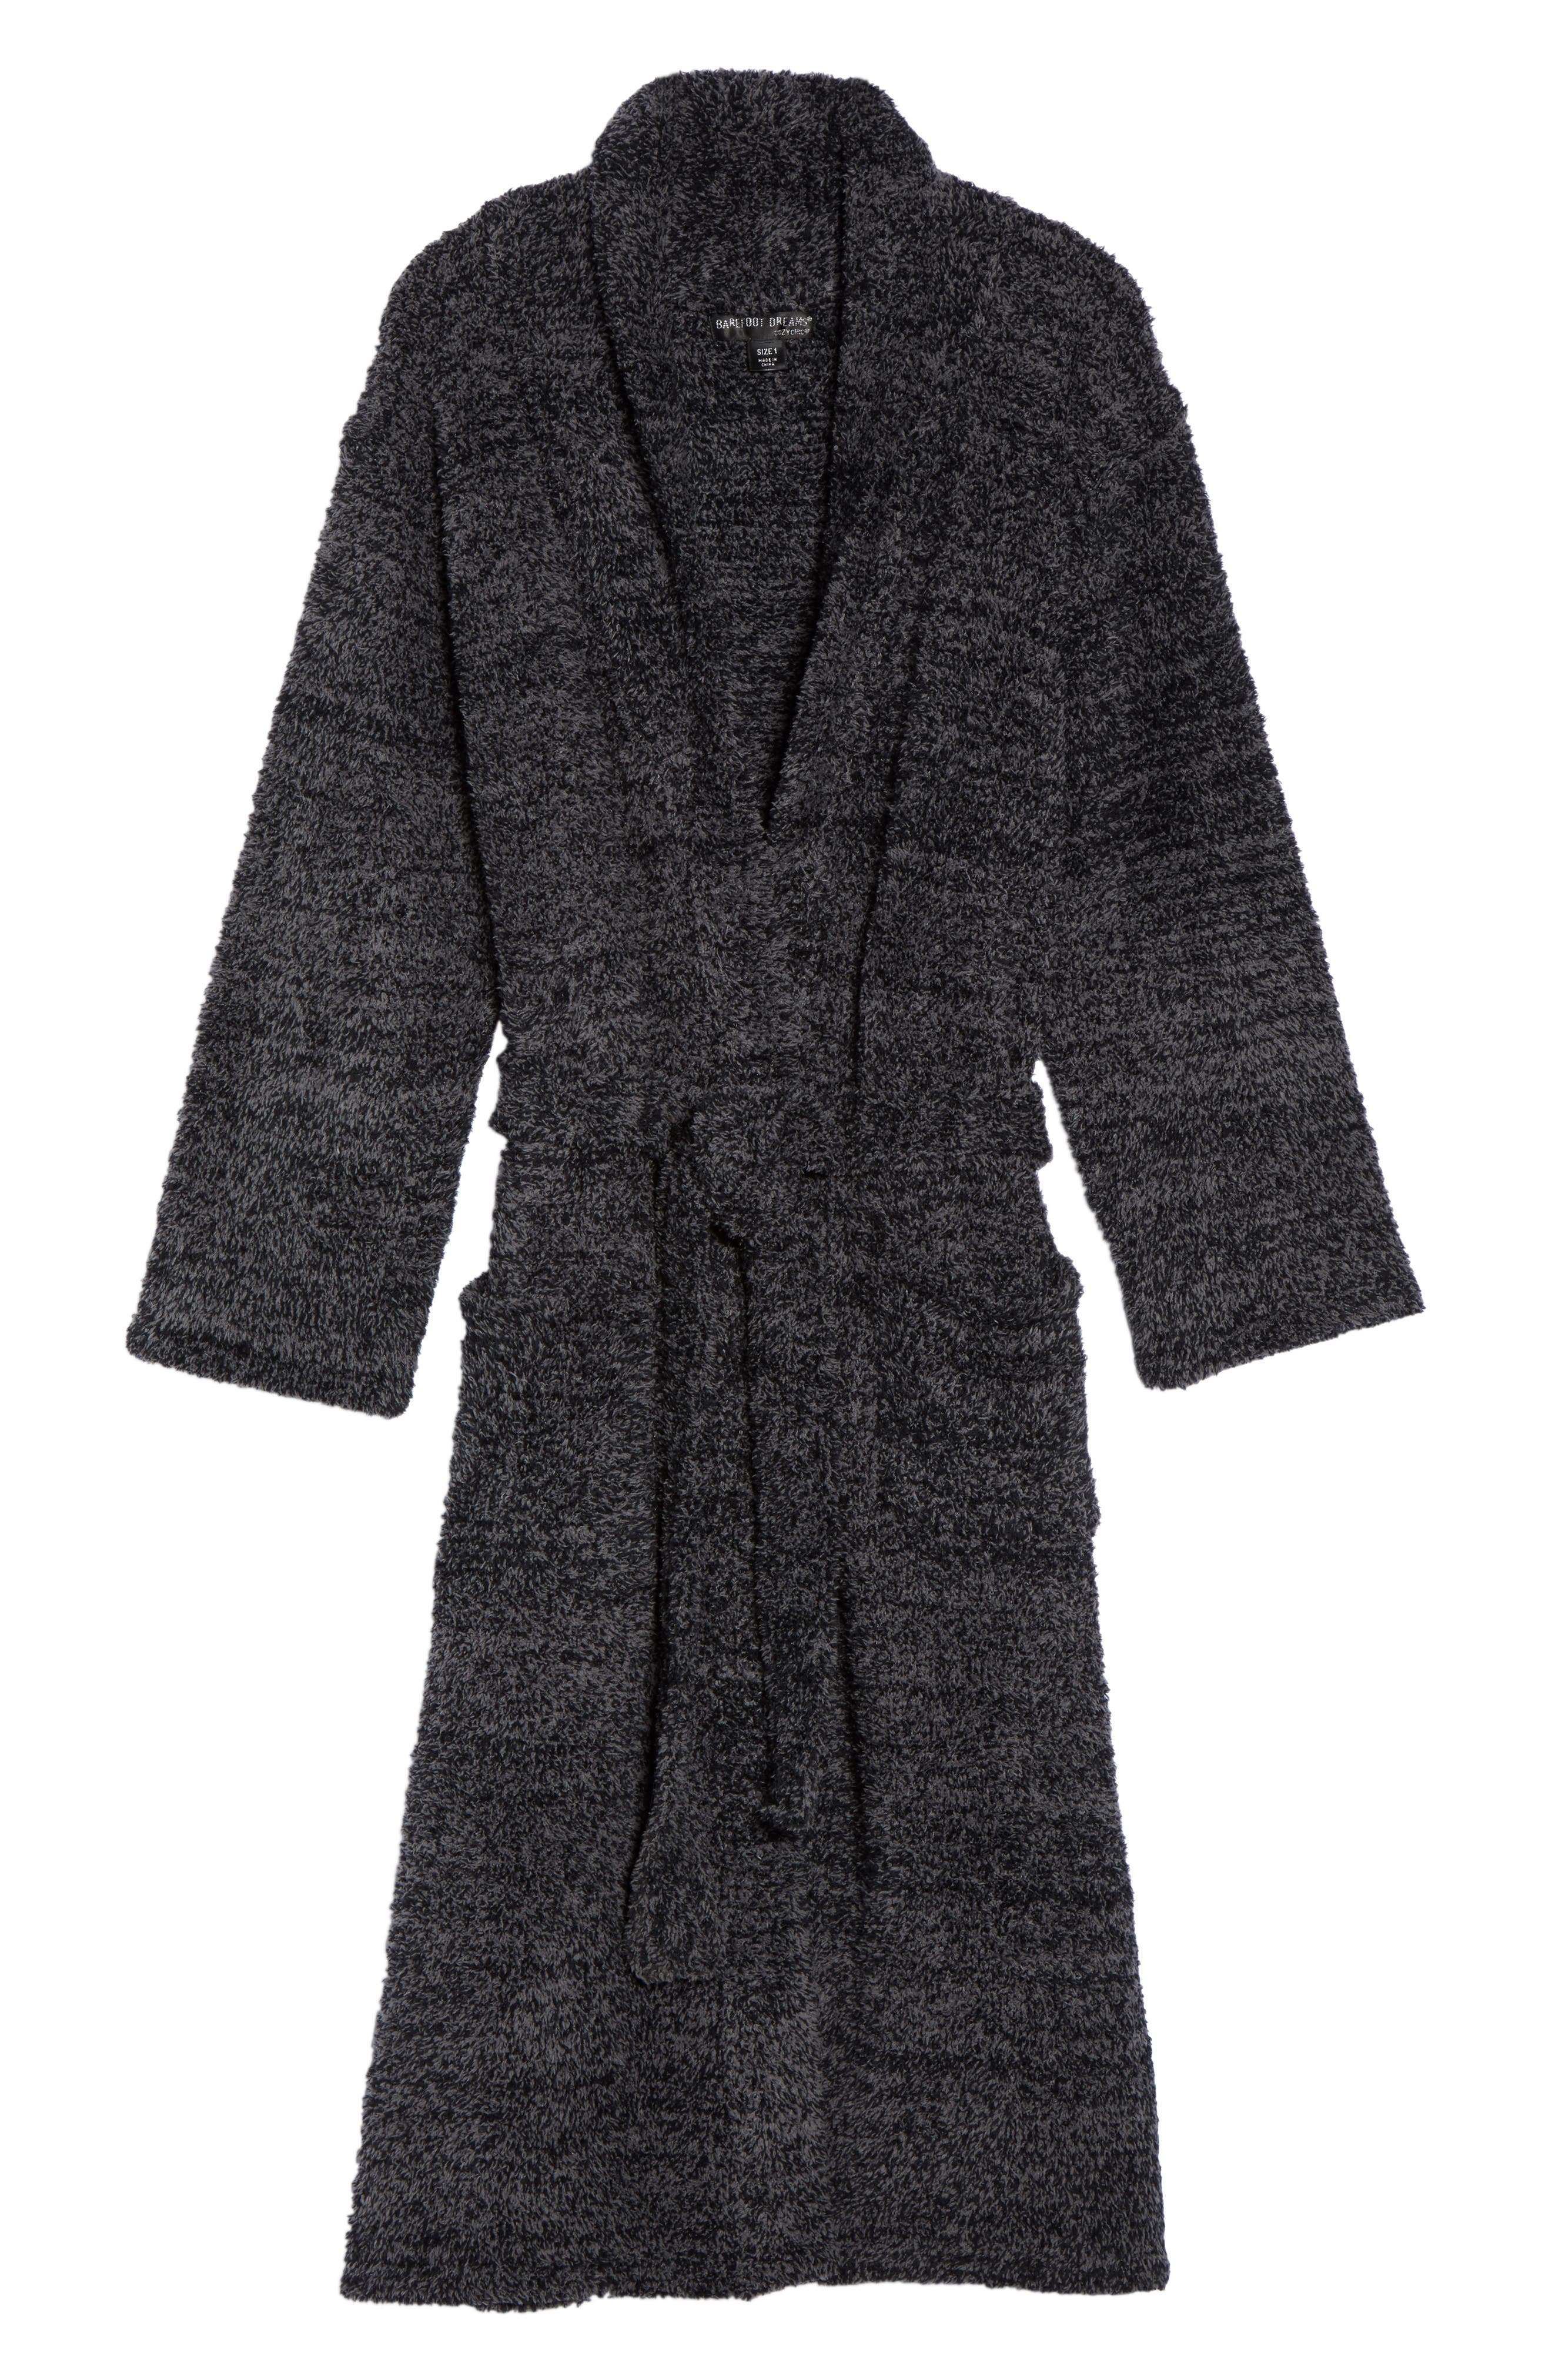 BAREFOOT DREAMS<SUP>®</SUP>, CozyChic<sup>®</sup> Robe, Alternate thumbnail 6, color, BLACK/ GRAPHITE